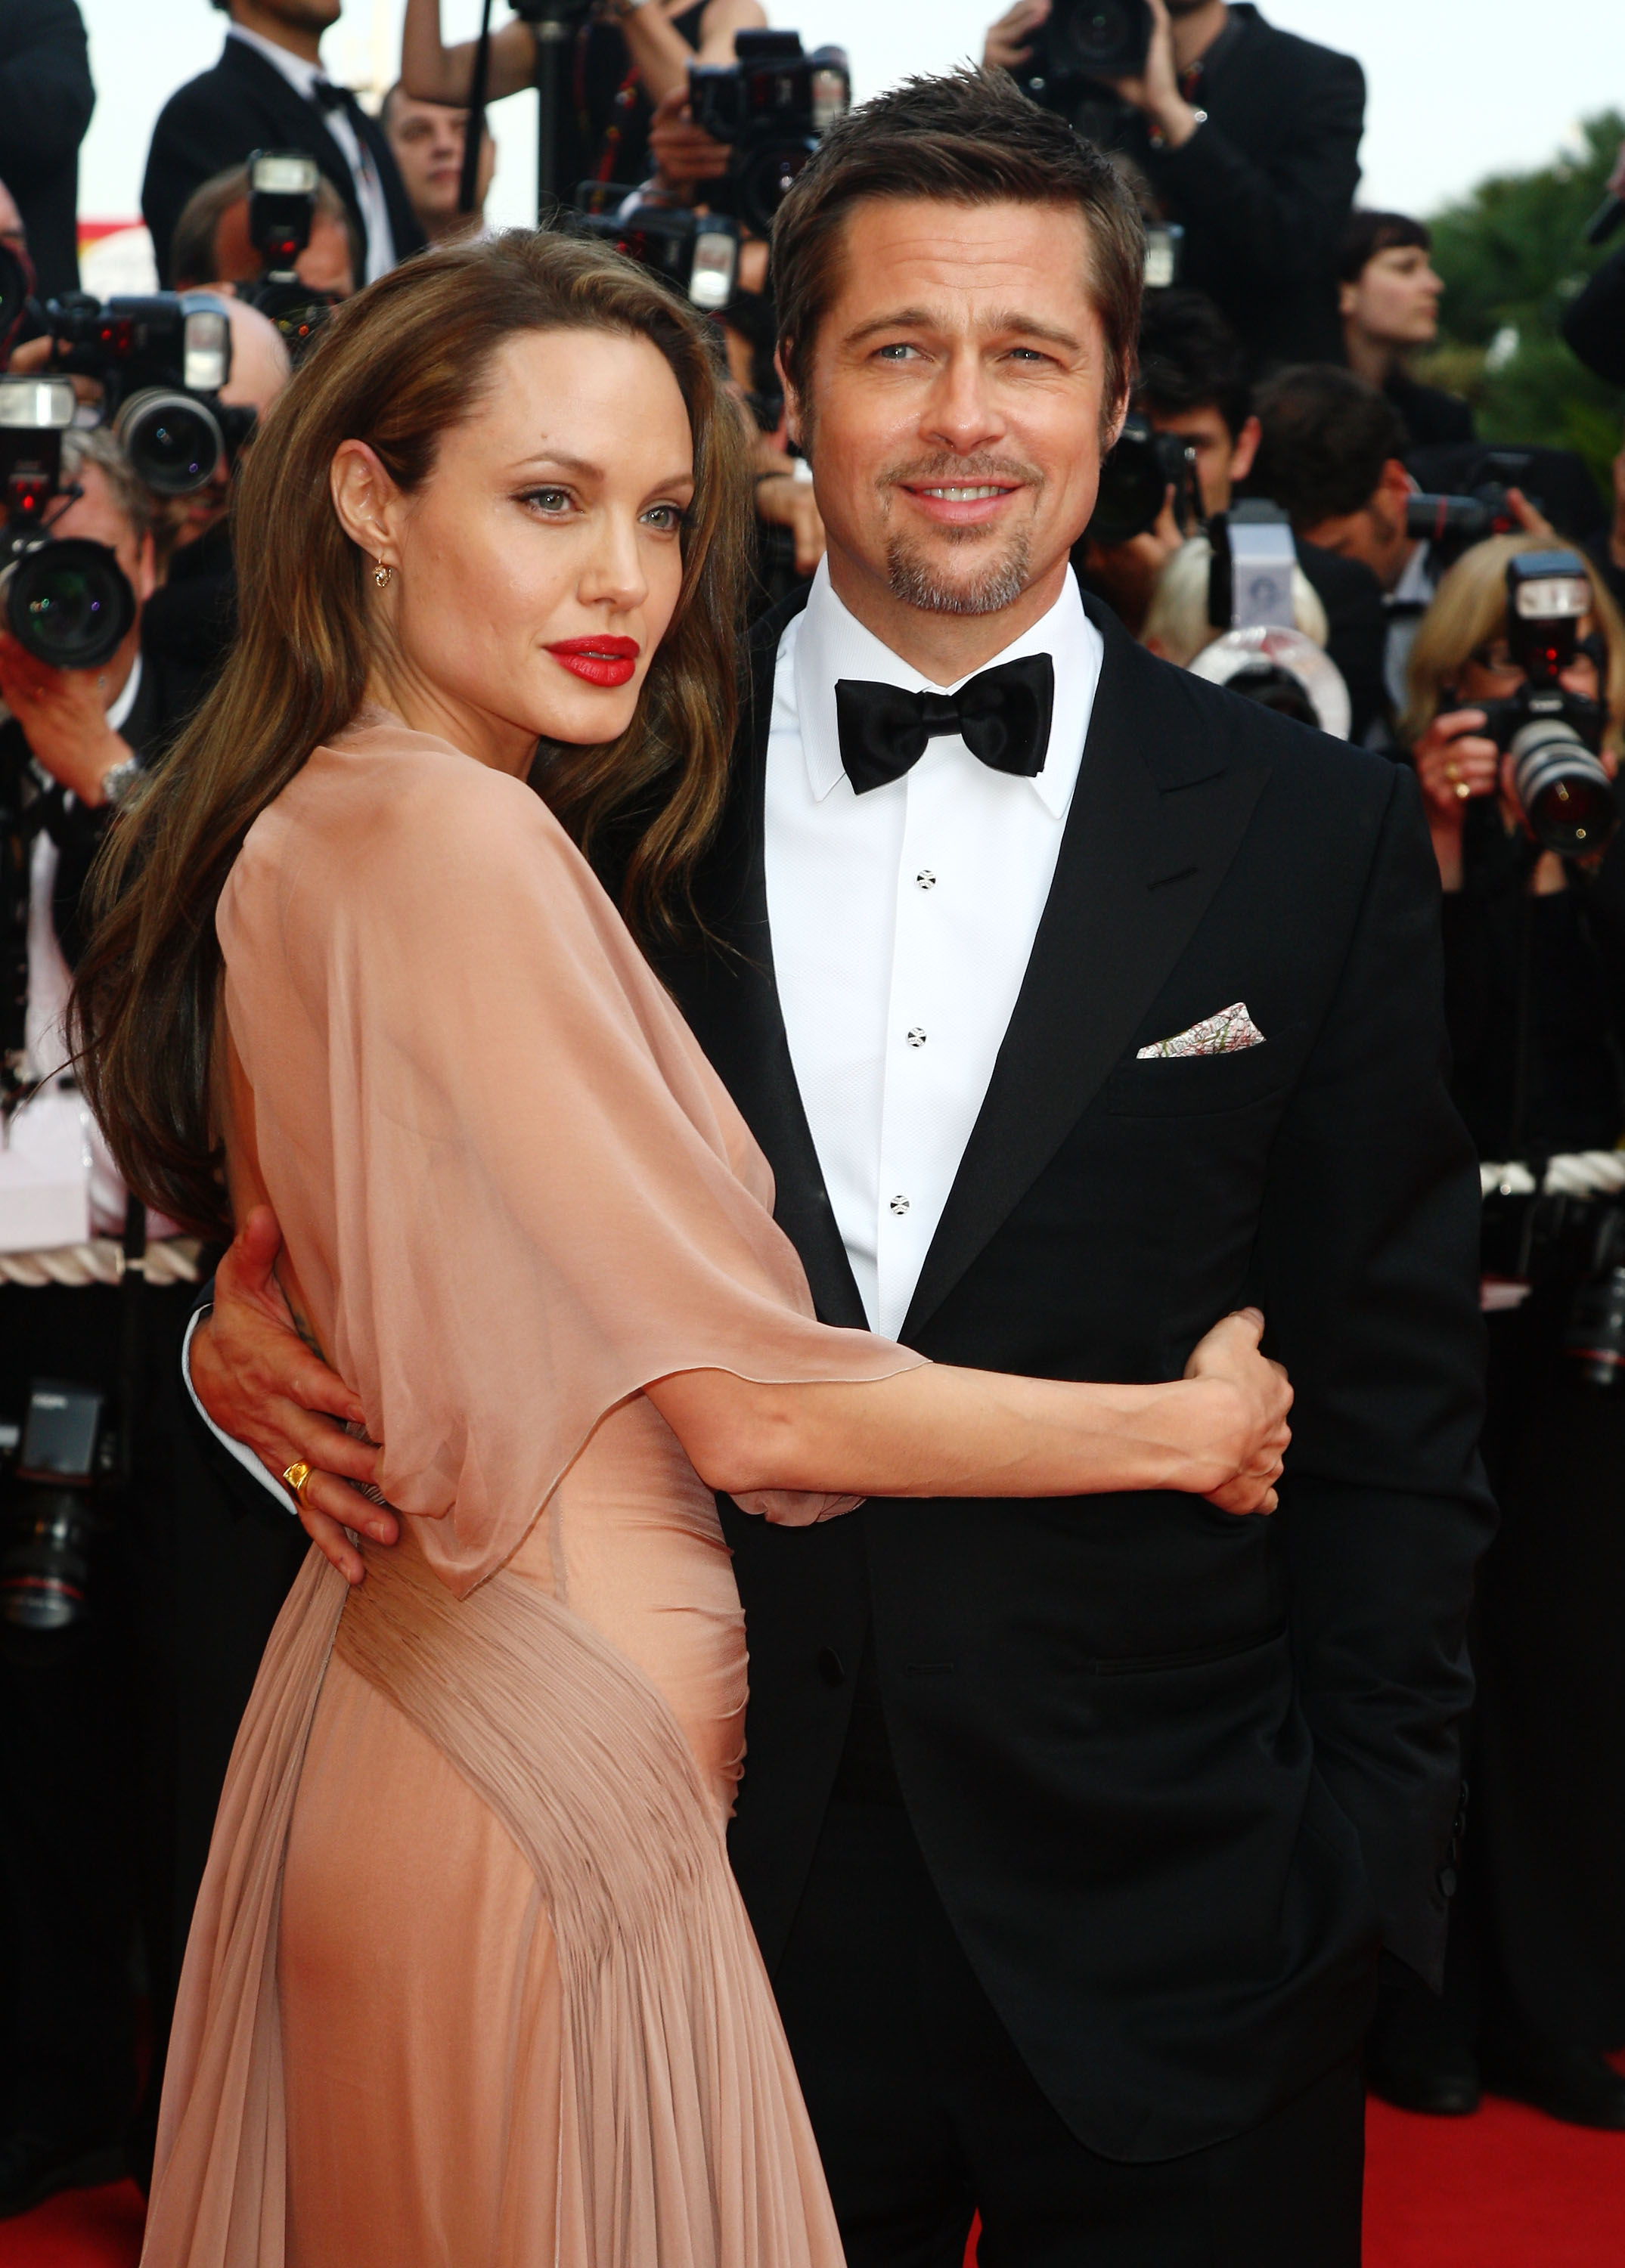 Actors Brad Pitt and Angelina Jolie attend the Inglourious Basterds Premiere held at the Palais Des Festivals during the 62nd International Cannes Film Festival on May 20th, 2009 in Cannes, France. (Photo by Gareth Cattermole/Getty Images)